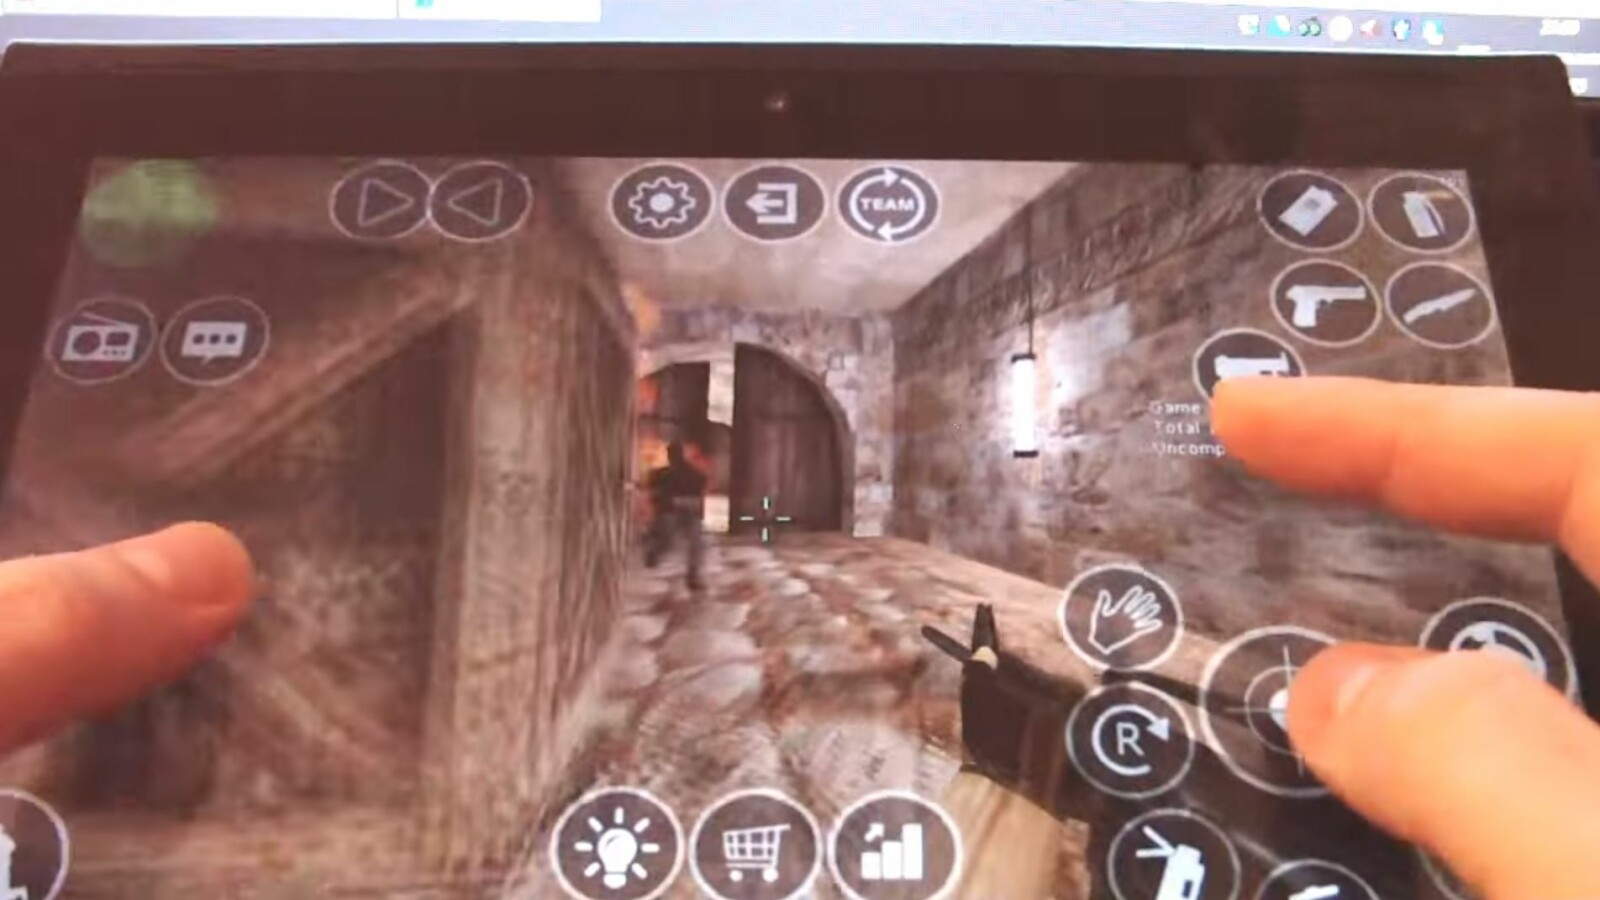 counter strike auf handy spielen dieser android hack macht es m glich netzwelt. Black Bedroom Furniture Sets. Home Design Ideas